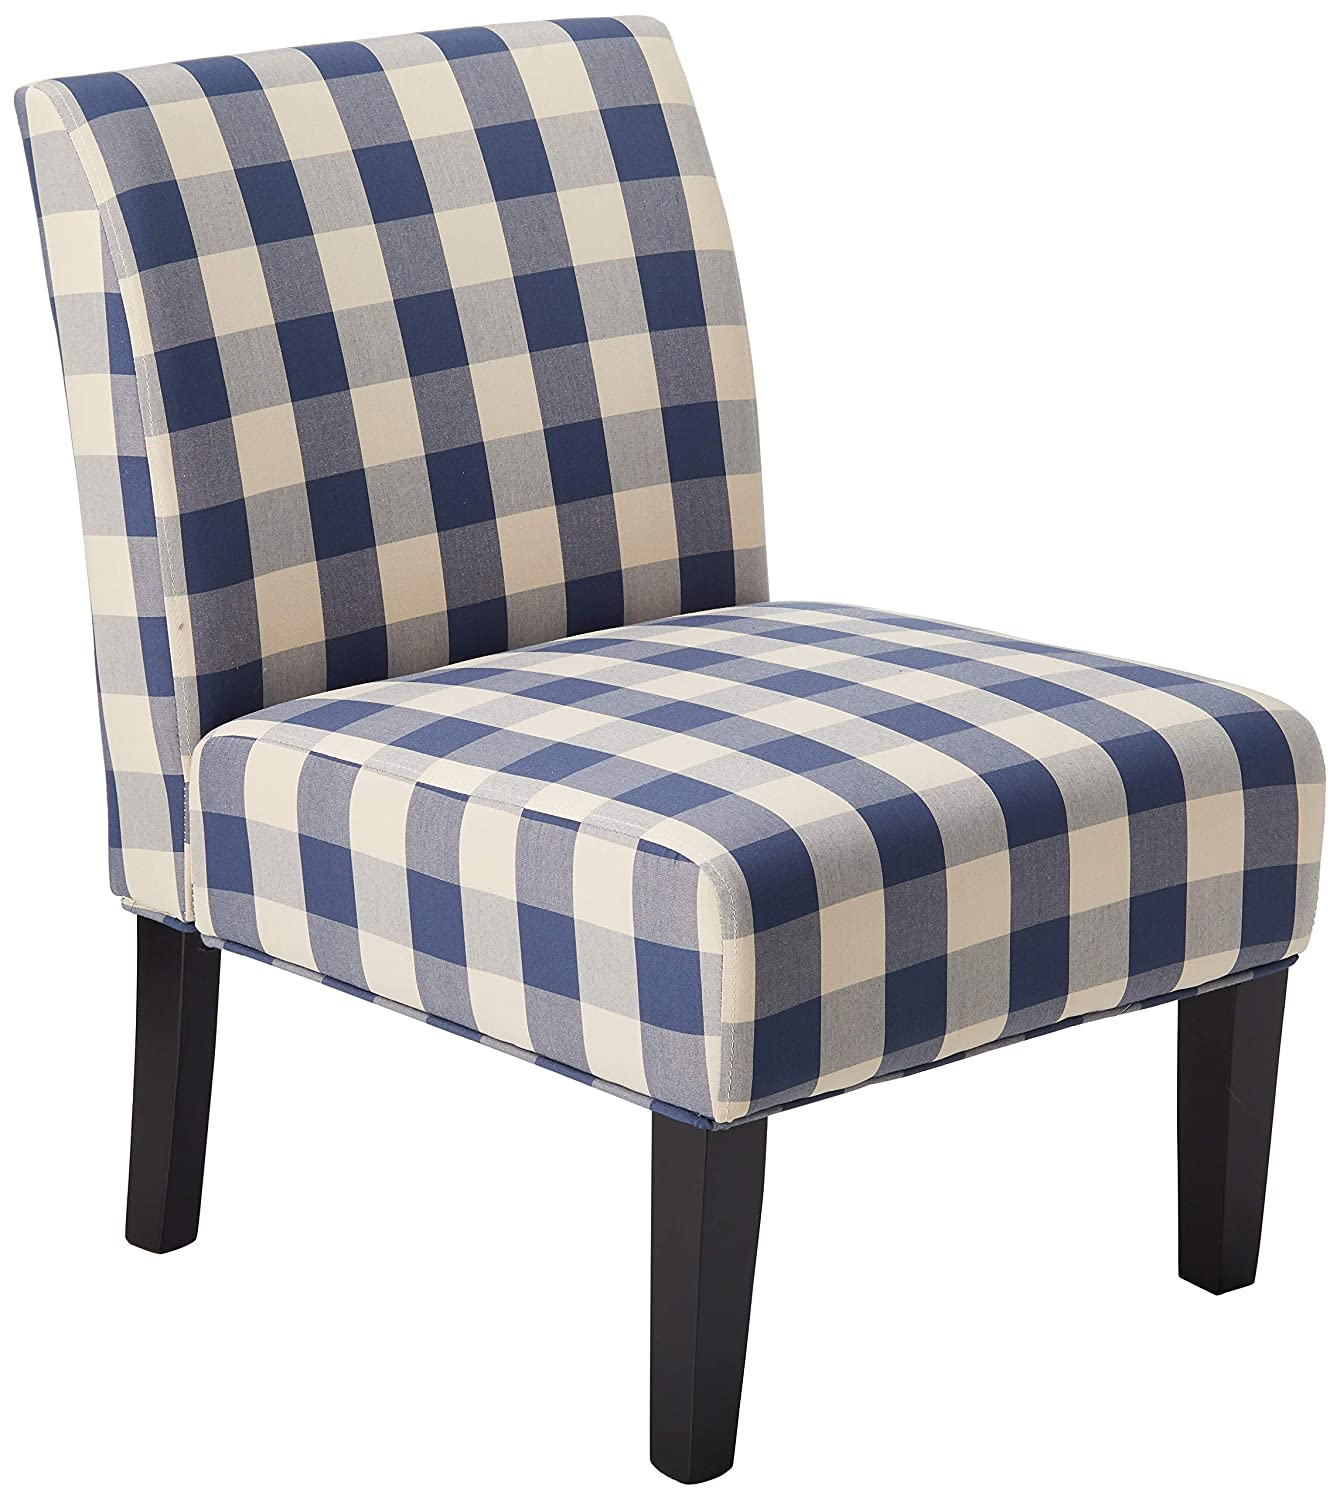 Christopher Knight Home 306532 Kendal Accent Chair Upholstered Farmhouse-Style Blue Checkerboard Matte Black Rubberwood Legs